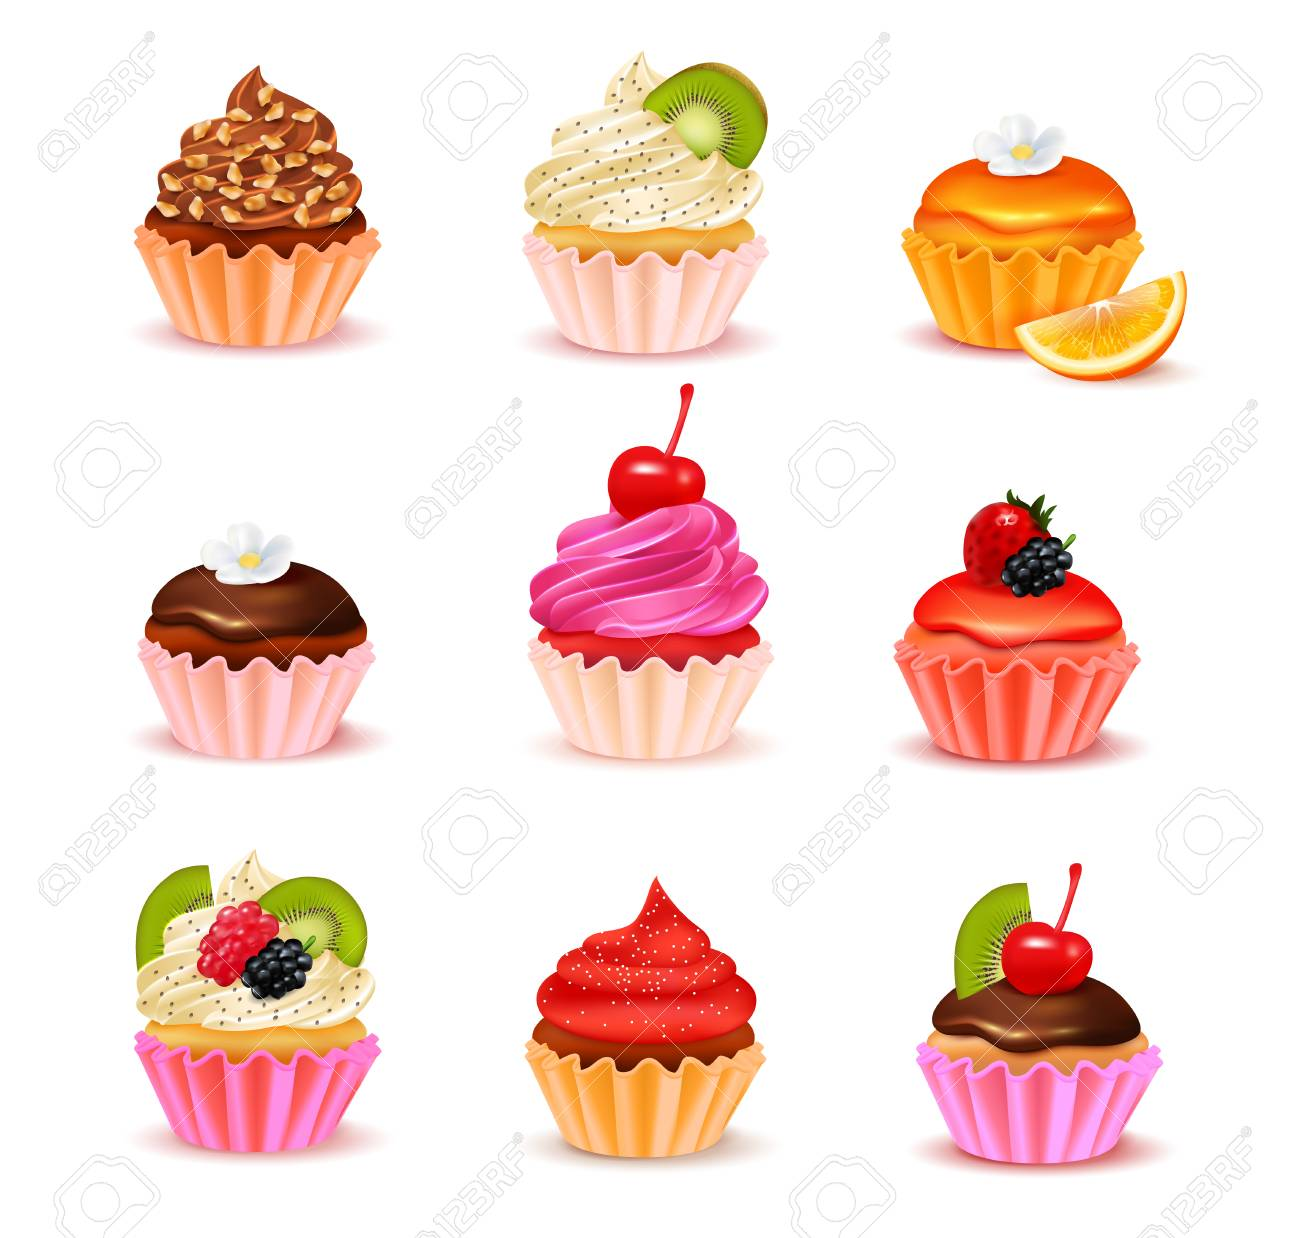 Bright realistic cupcakes with various fillings assortment set isolated on white background vector illustration - 79065347